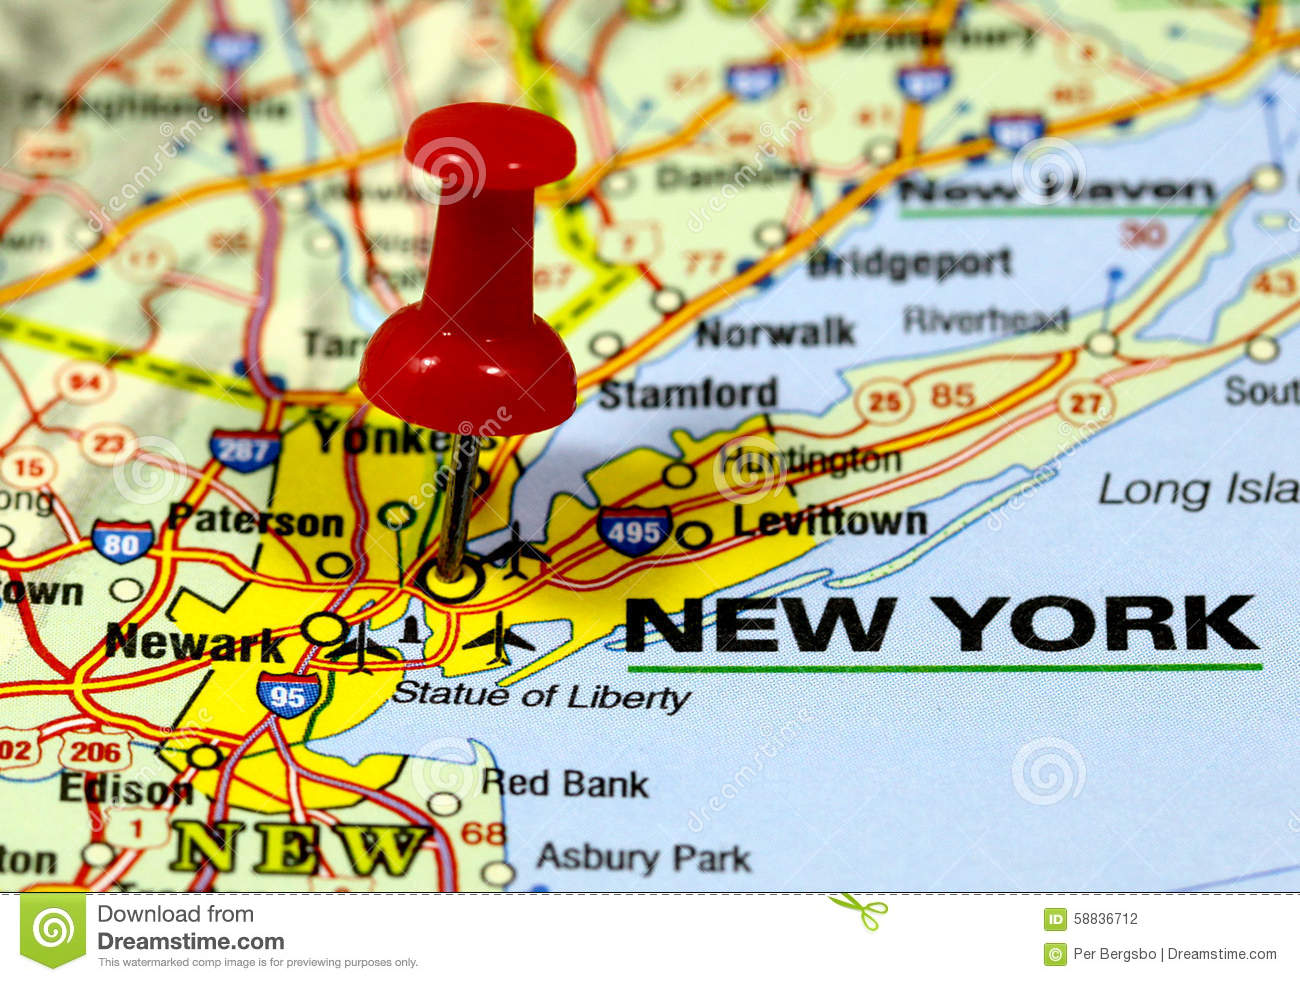 New York On The Map Of Usa.New York Stock Photo Image Of District Paper Atlas 58836712